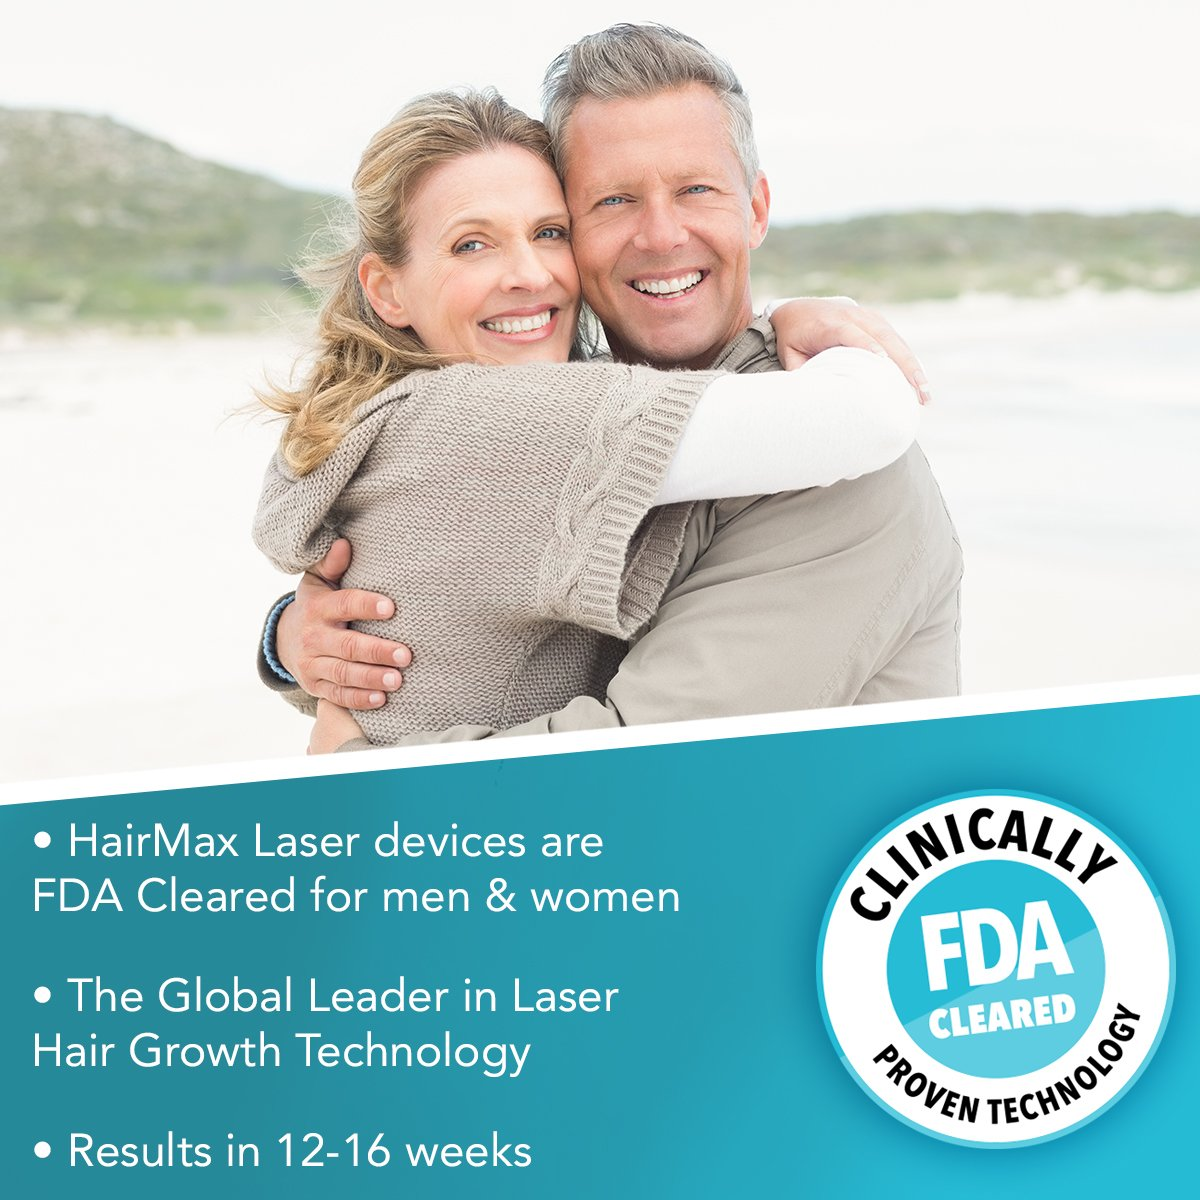 HairMax Prima LaserComb (Prima 9), Stimulates Hair Growth, Reverses Thinning, Regrows Denser, Fuller Hair. Targeted hair loss treatment. Light, Portable, FDA Cleared.